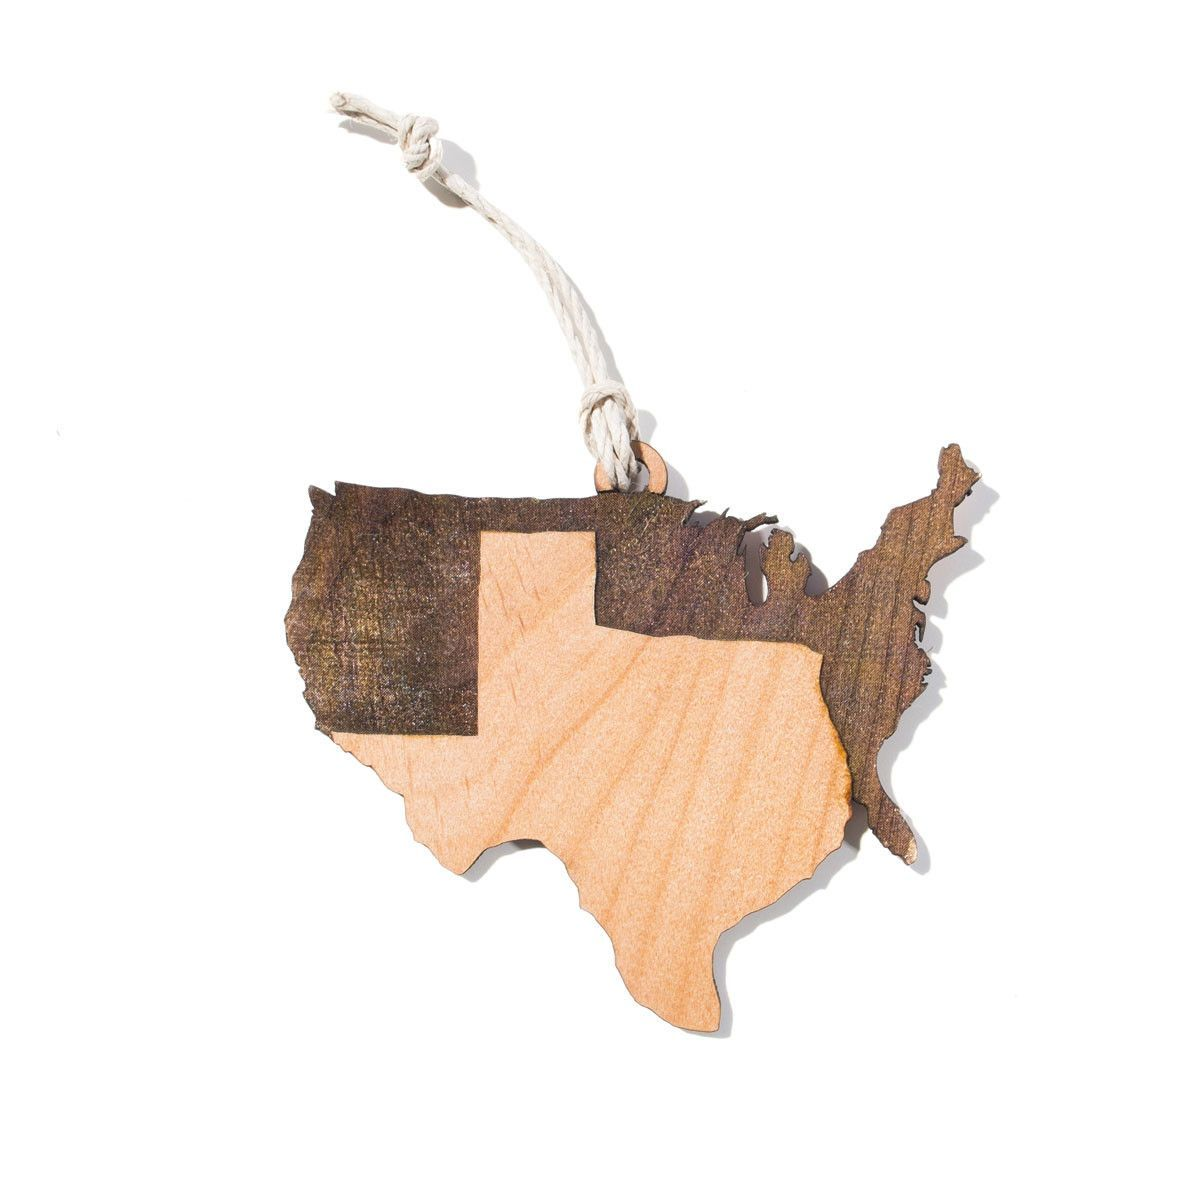 The Correct Map Christmas Ornament from Texas Humor Store